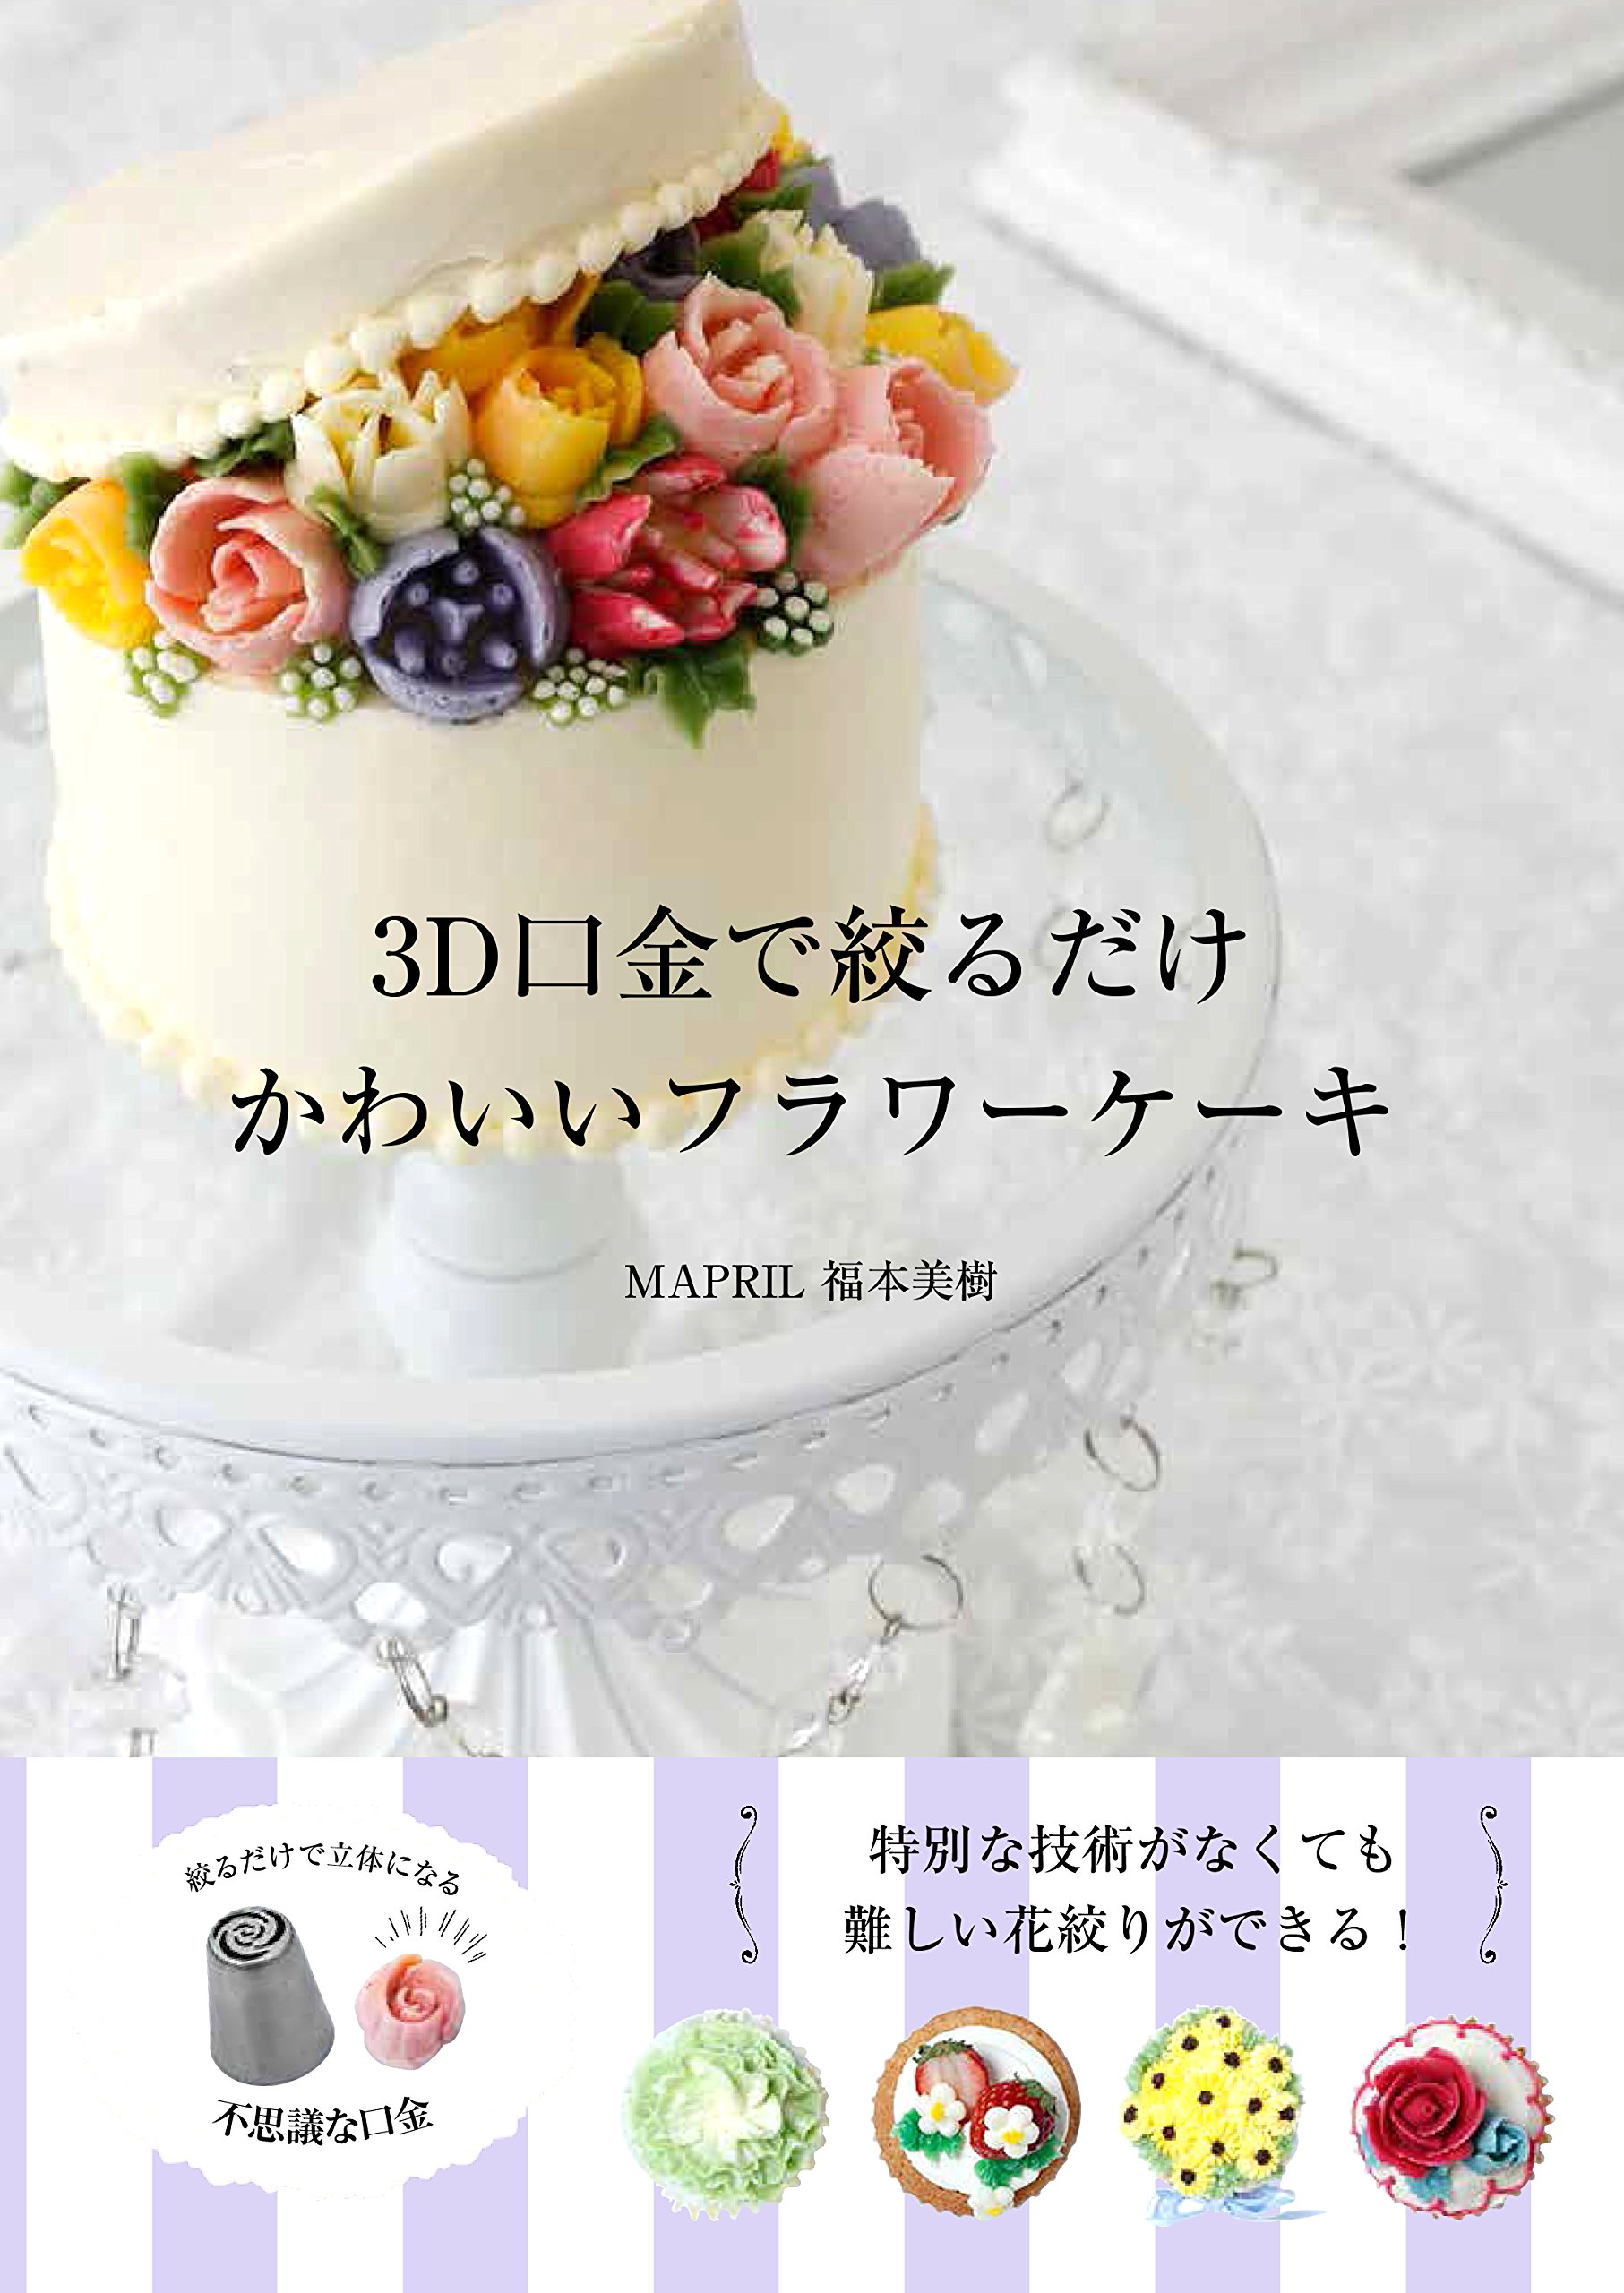 Only squeeze in 3D cap cute Flower Cake